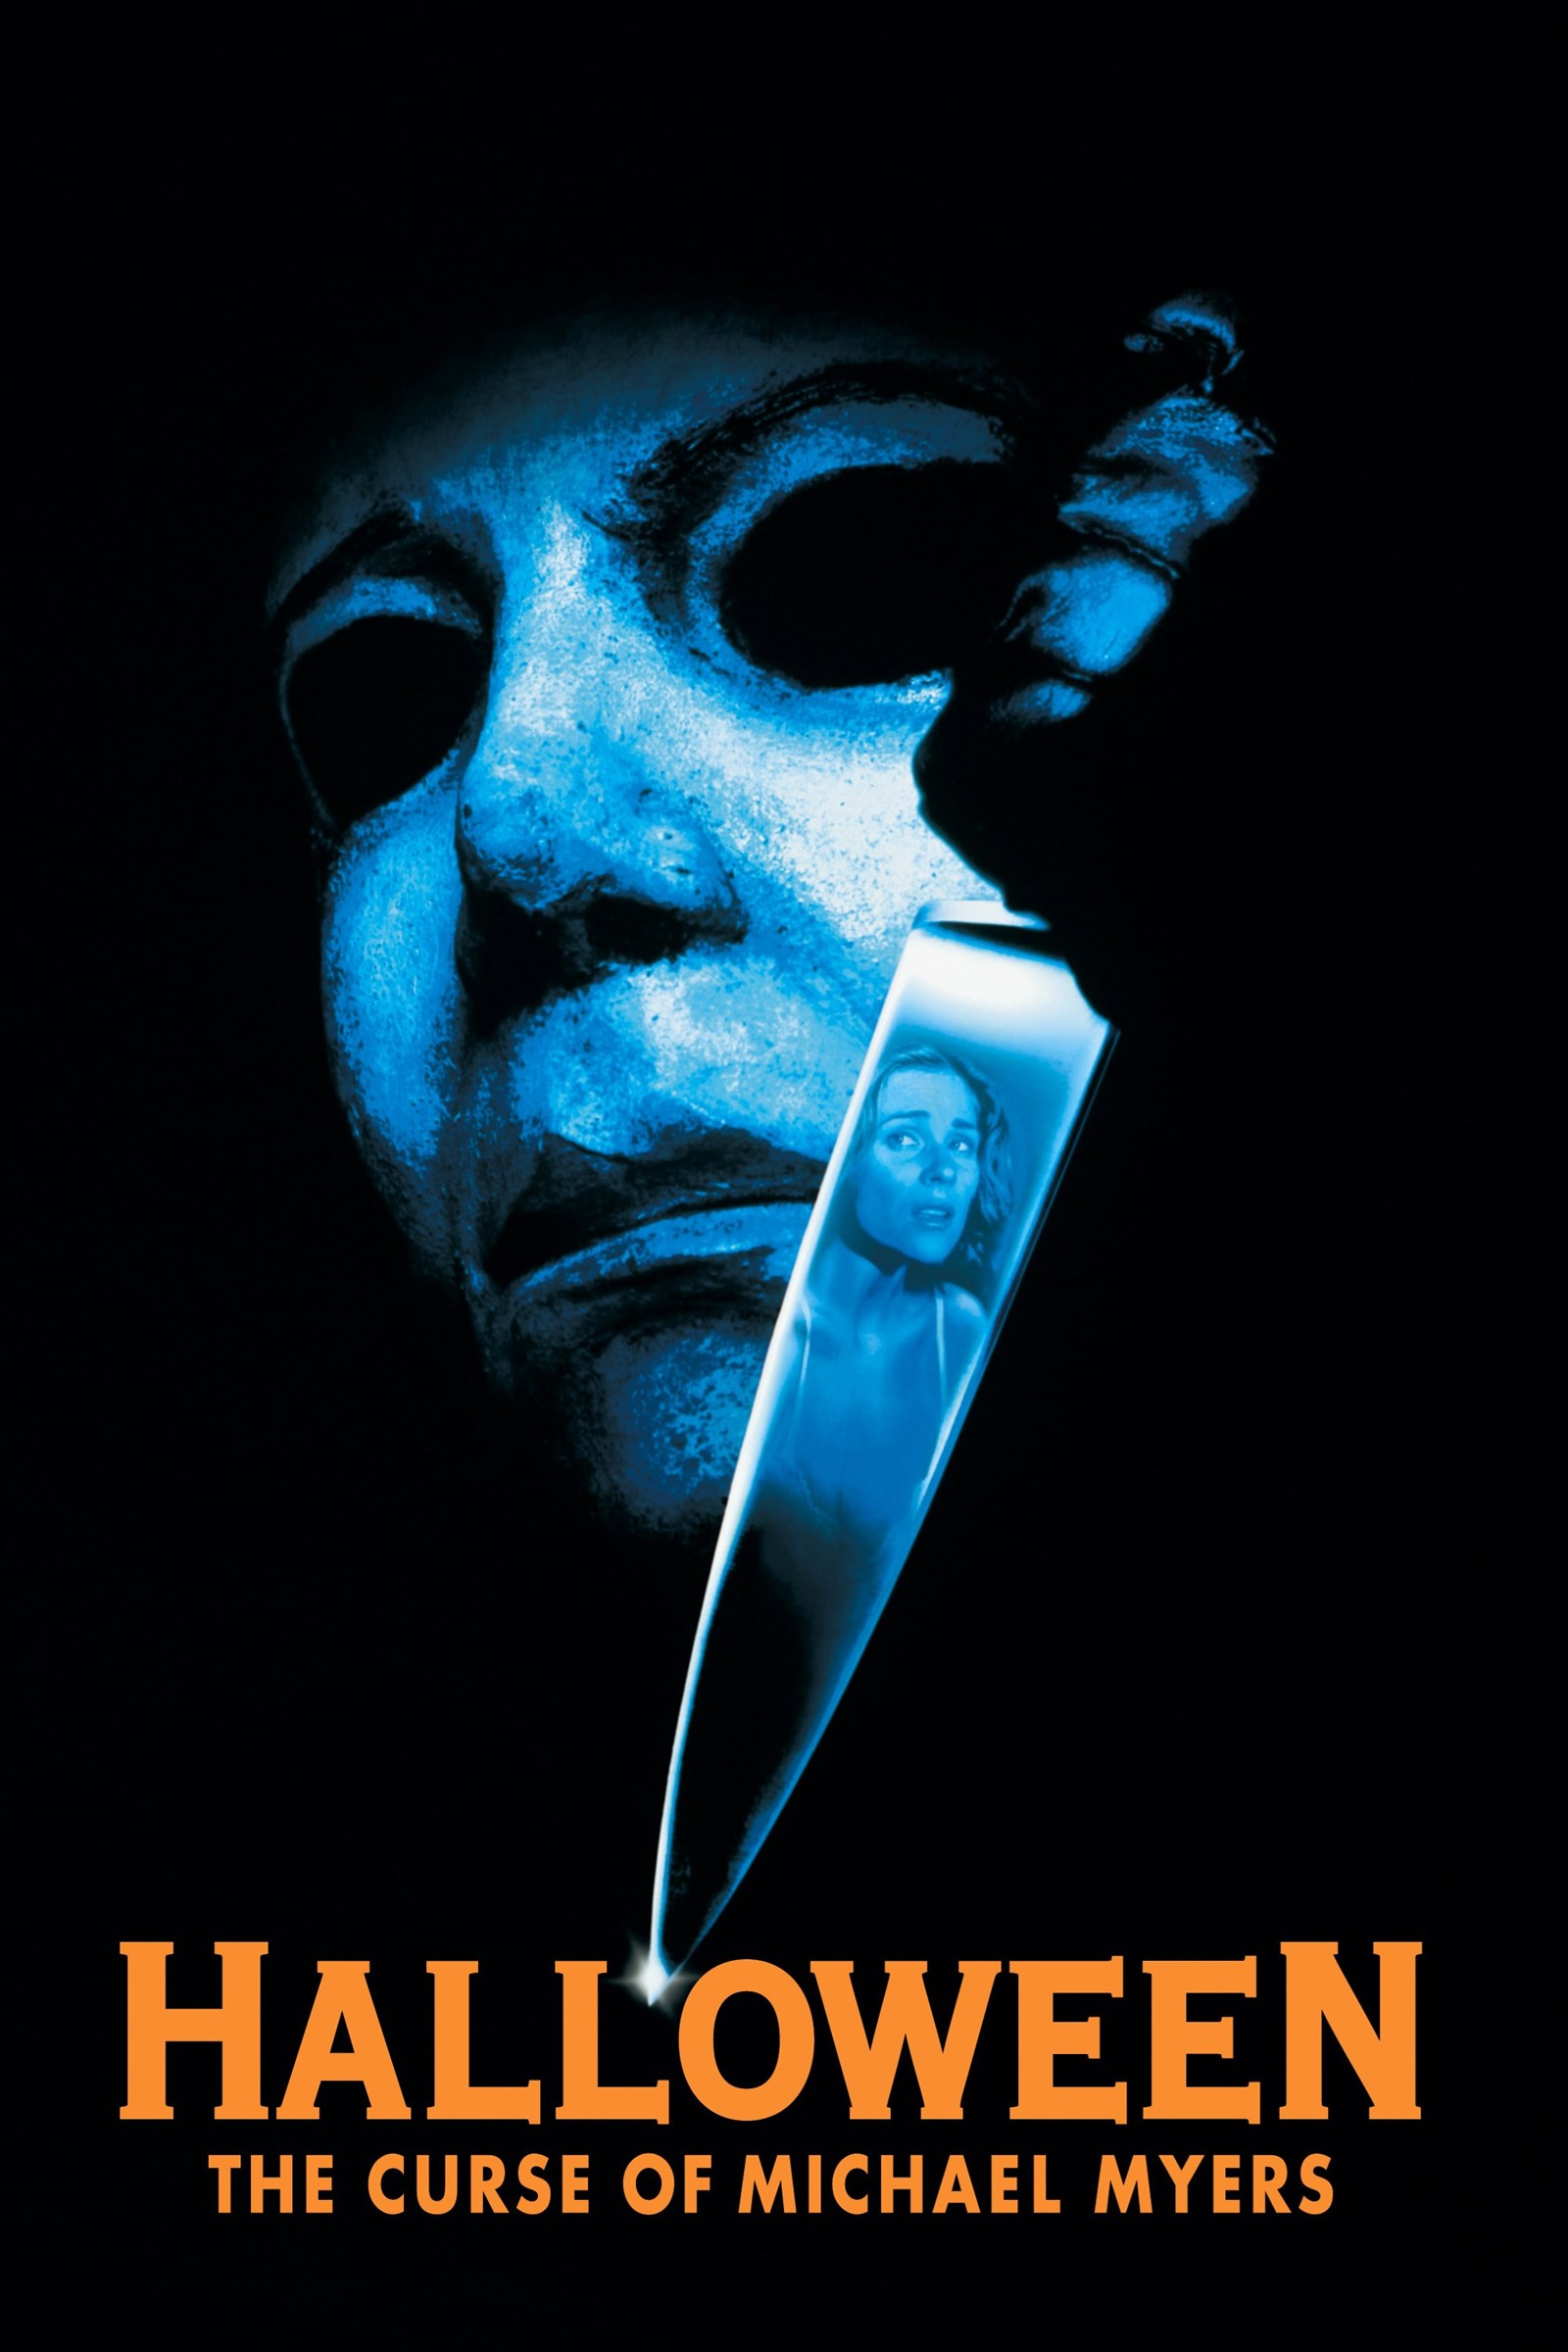 14 - Halloween: The Curse of Michael Myers